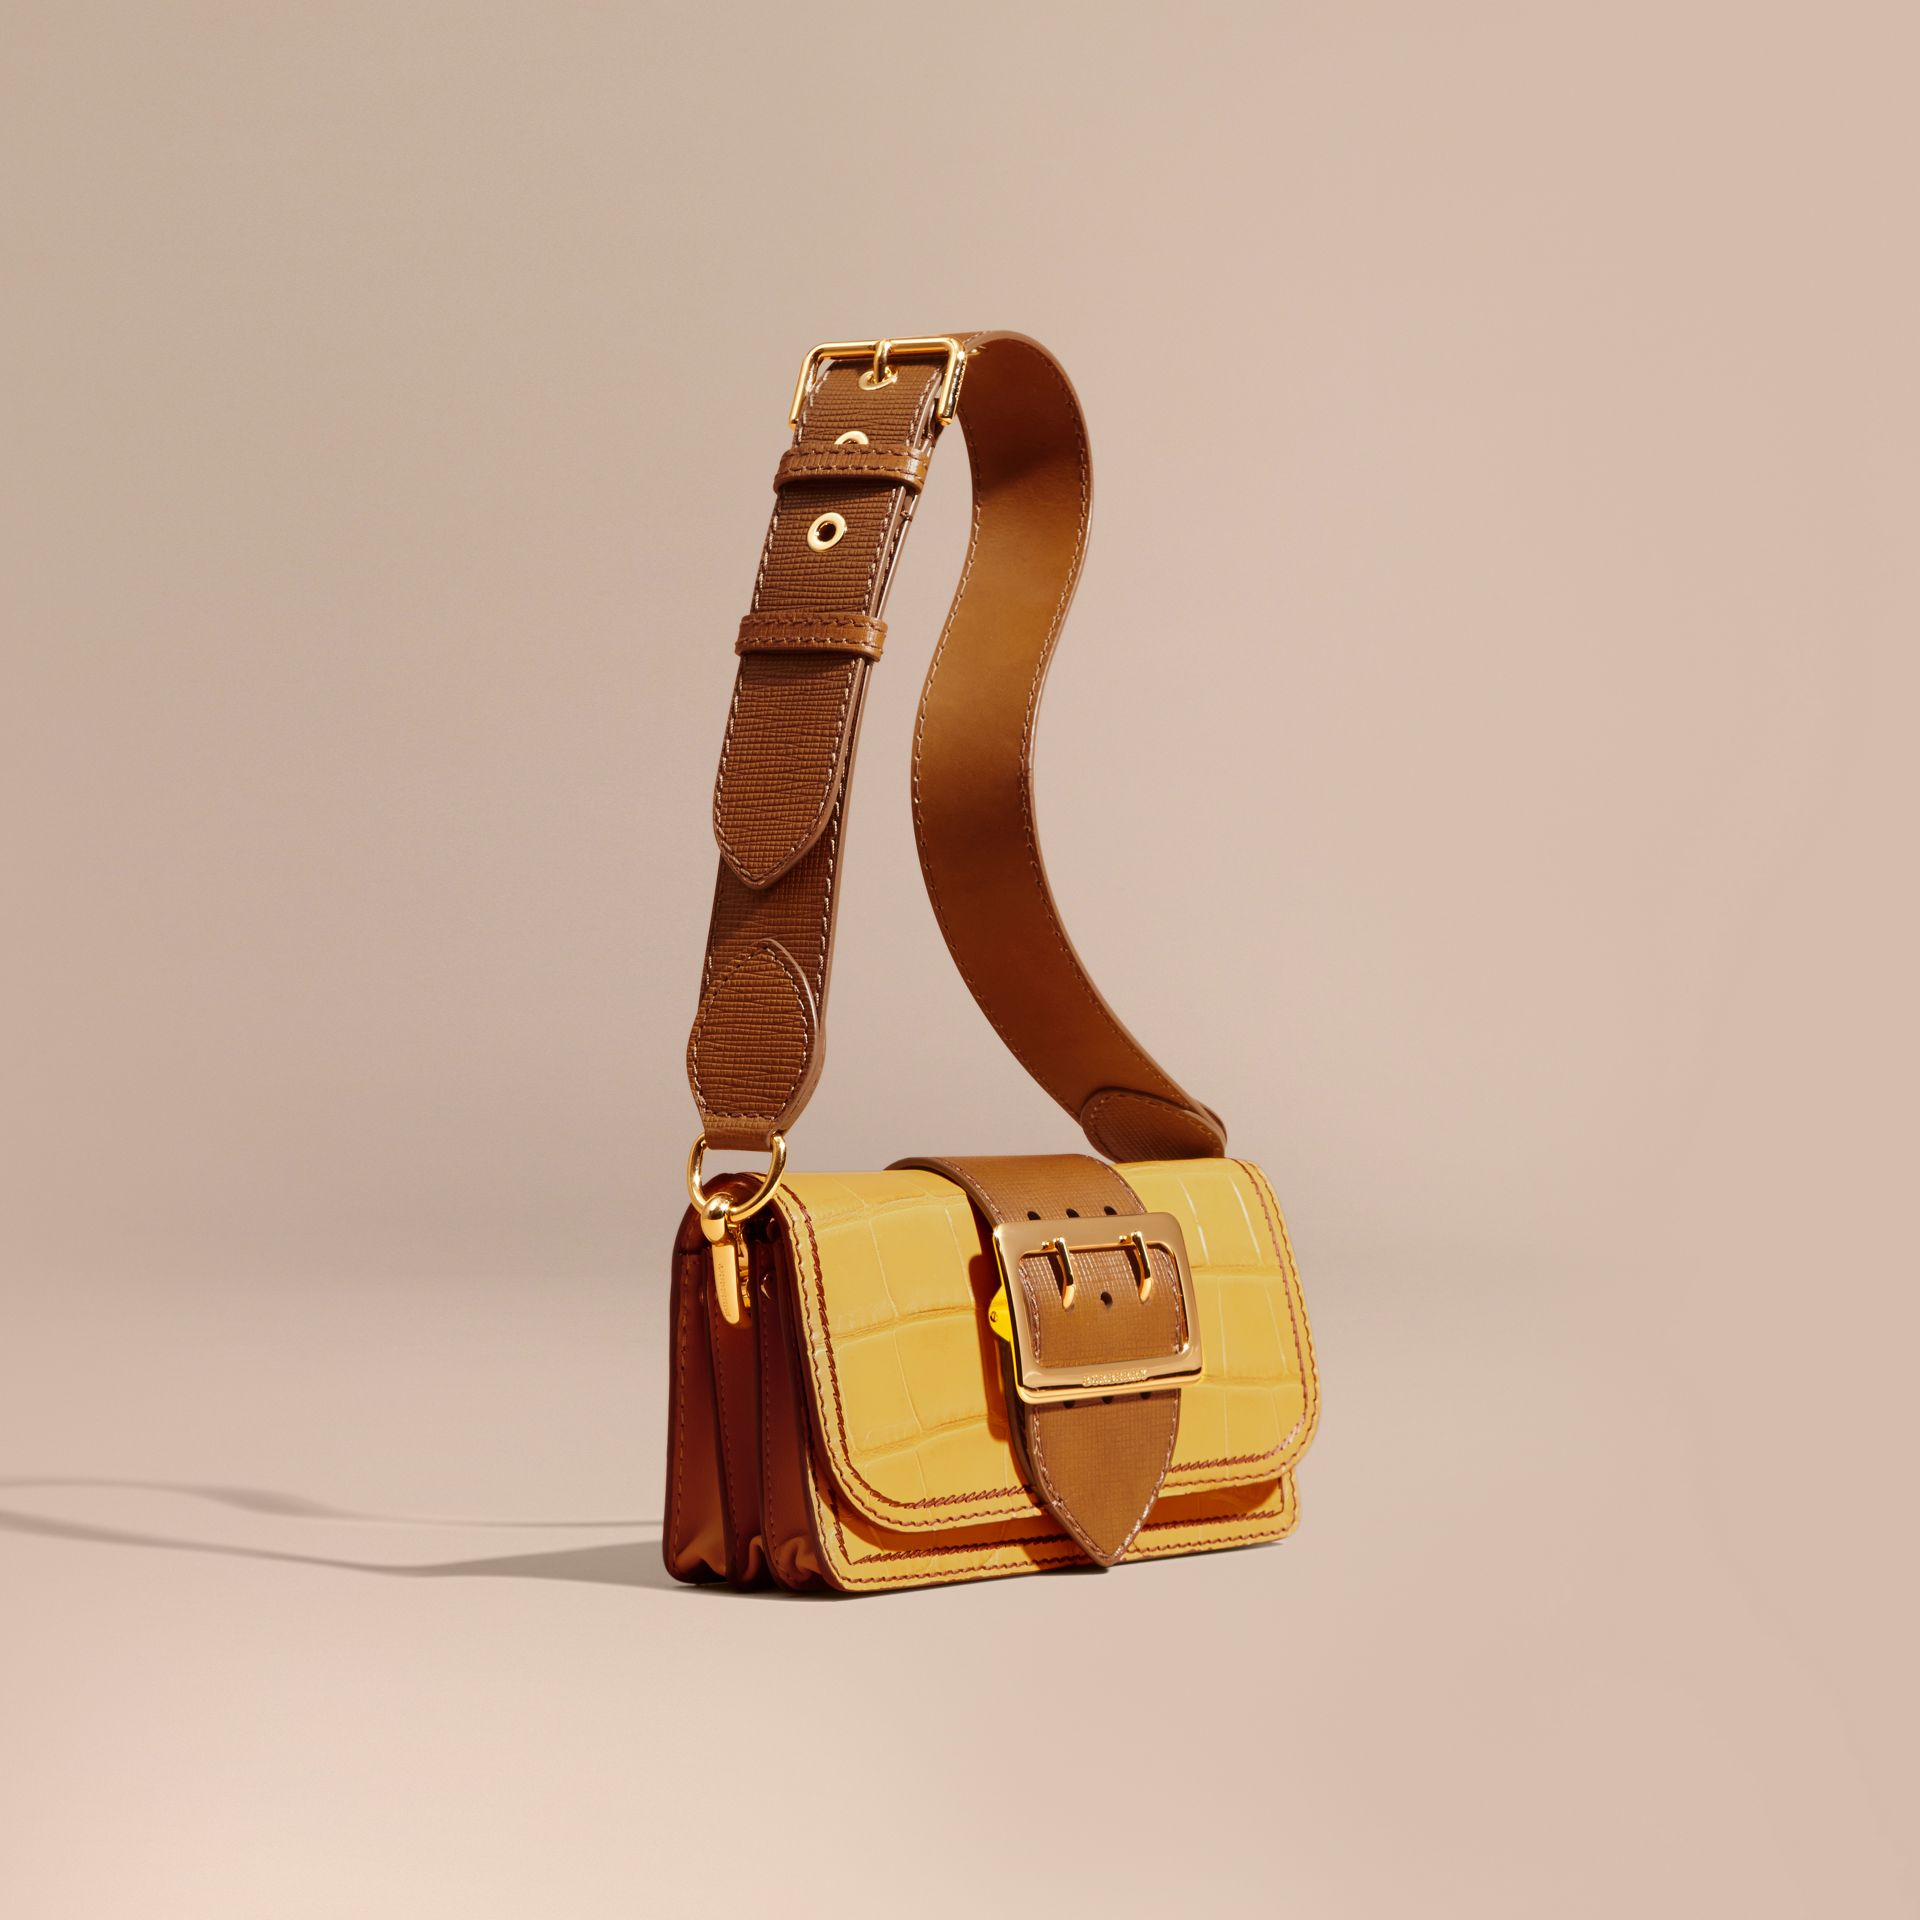 The Small Buckle Bag in Alligator and Leather in Citrus Yellow / Tan - Women | Burberry - gallery image 1